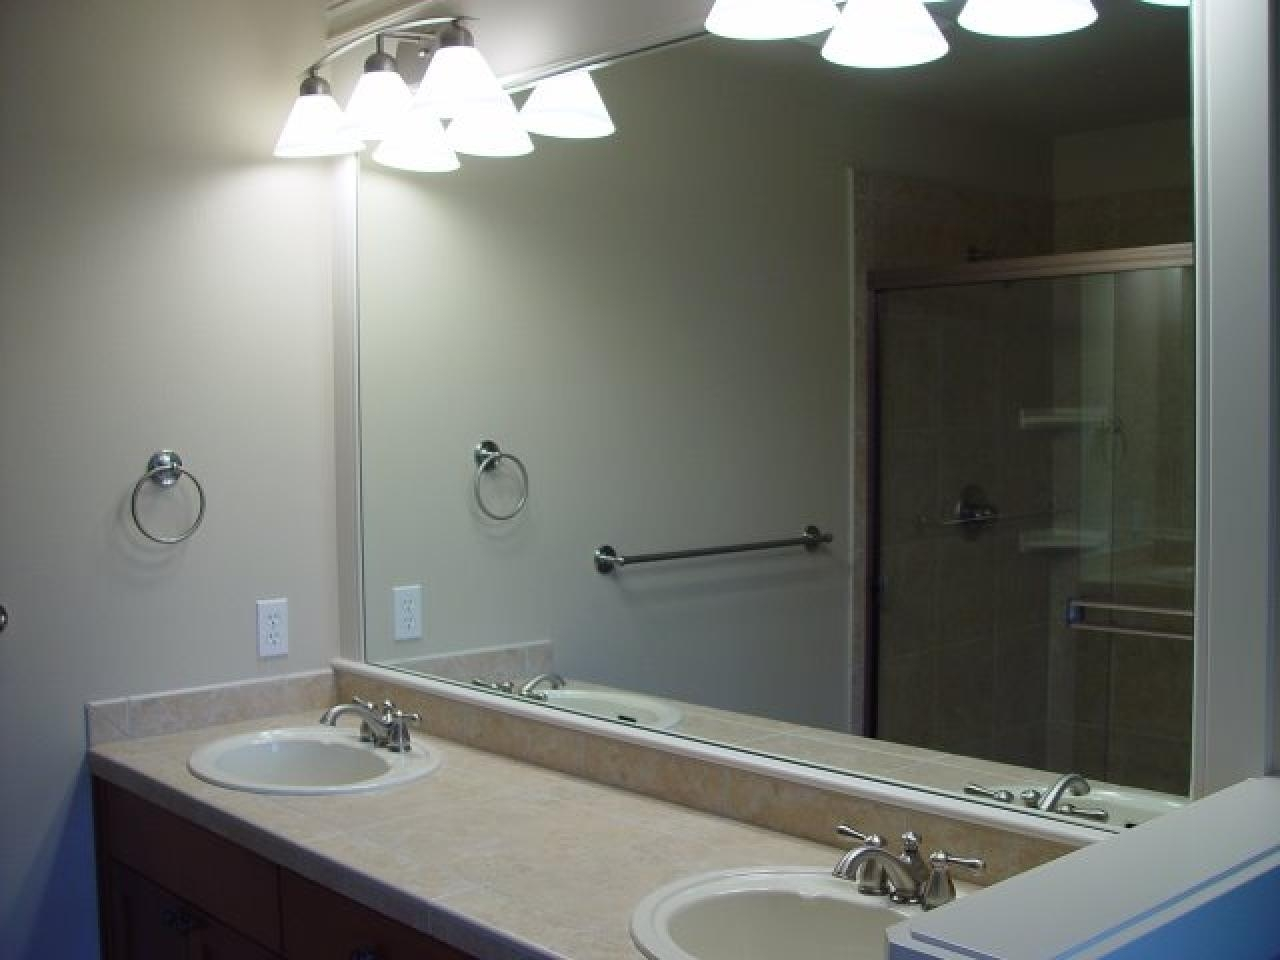 Bathrooms Design : Wall Mounted Mirror Unframed Mirrors Regarding Large Mirrors For Bathroom Walls (Image 13 of 20)